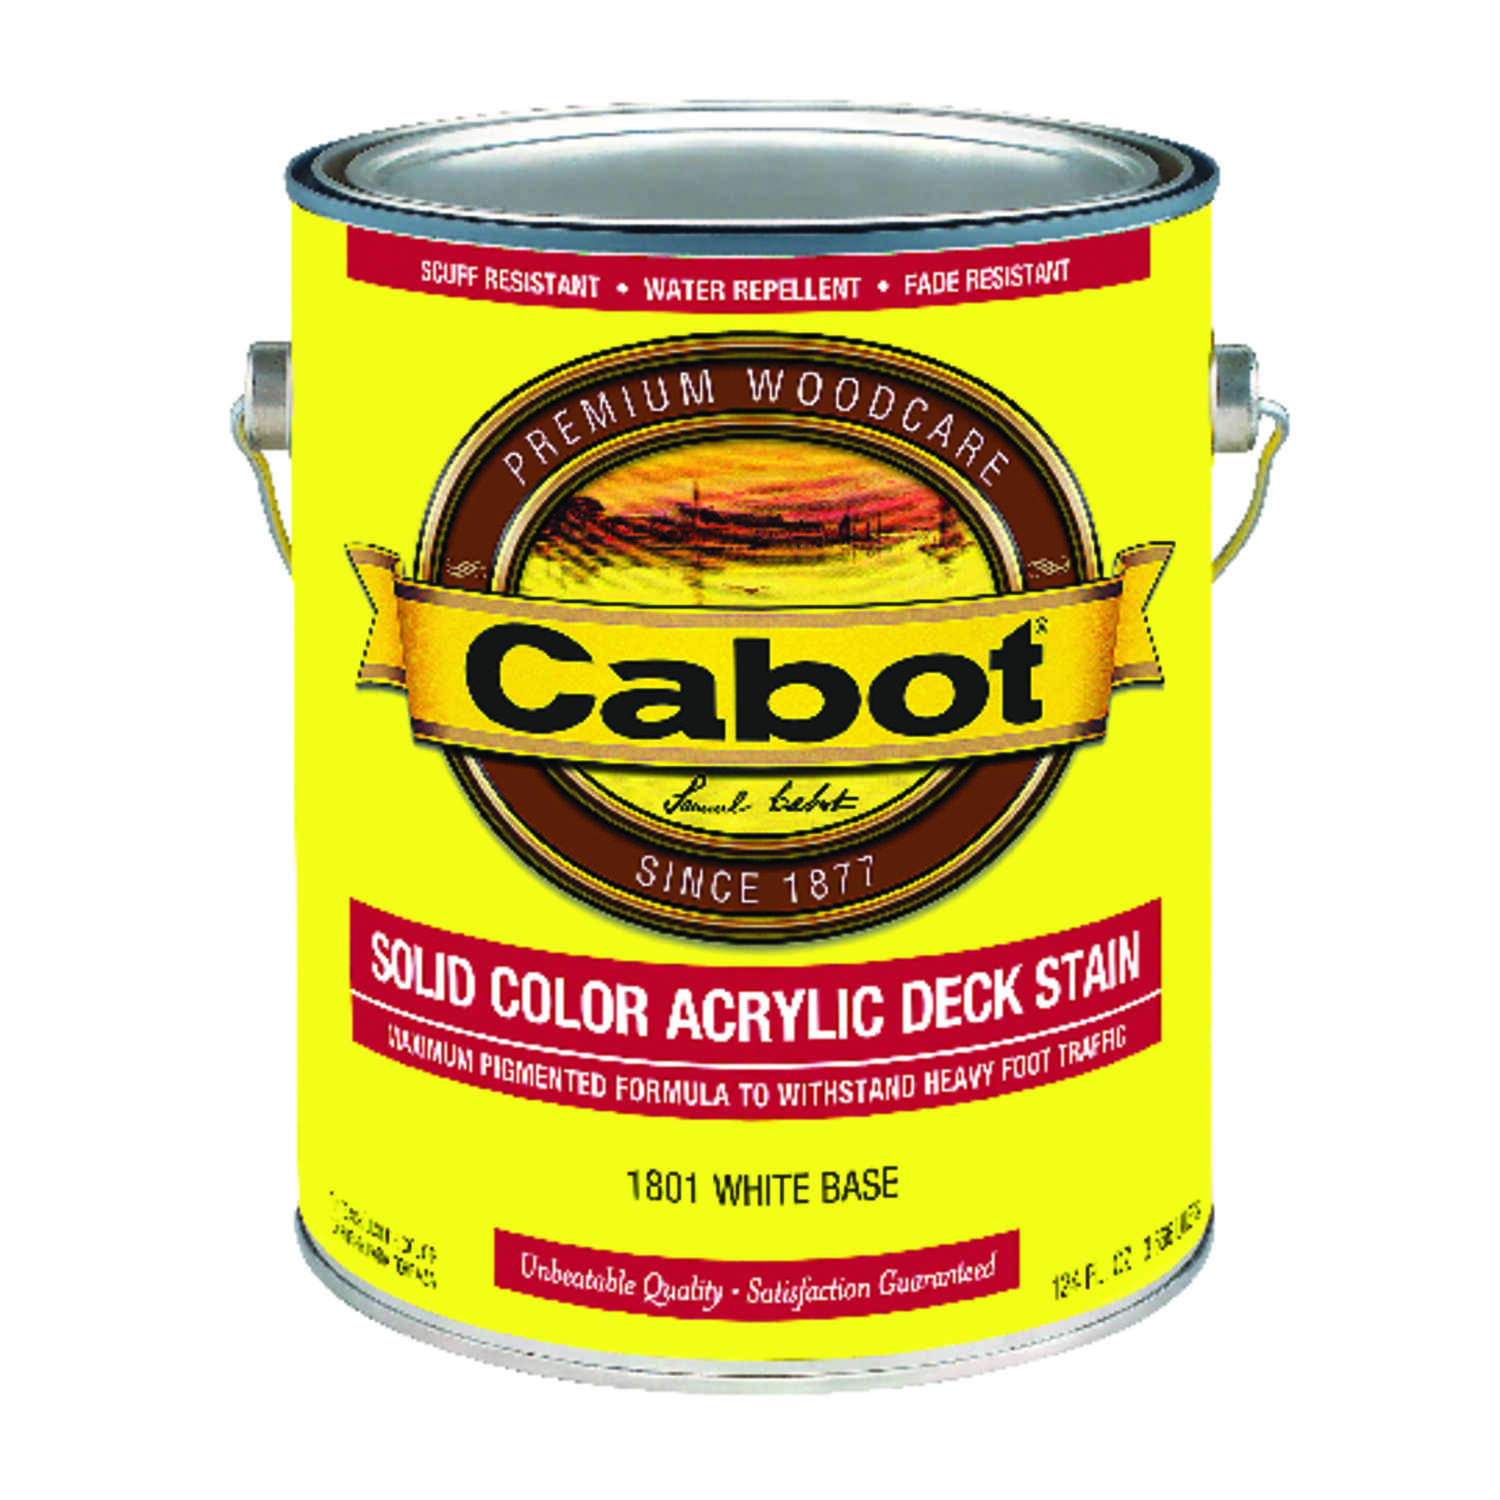 Cabot  Solid  Tintable White Base  Oil-Based  Acrylic  Deck Stain  1 gal.